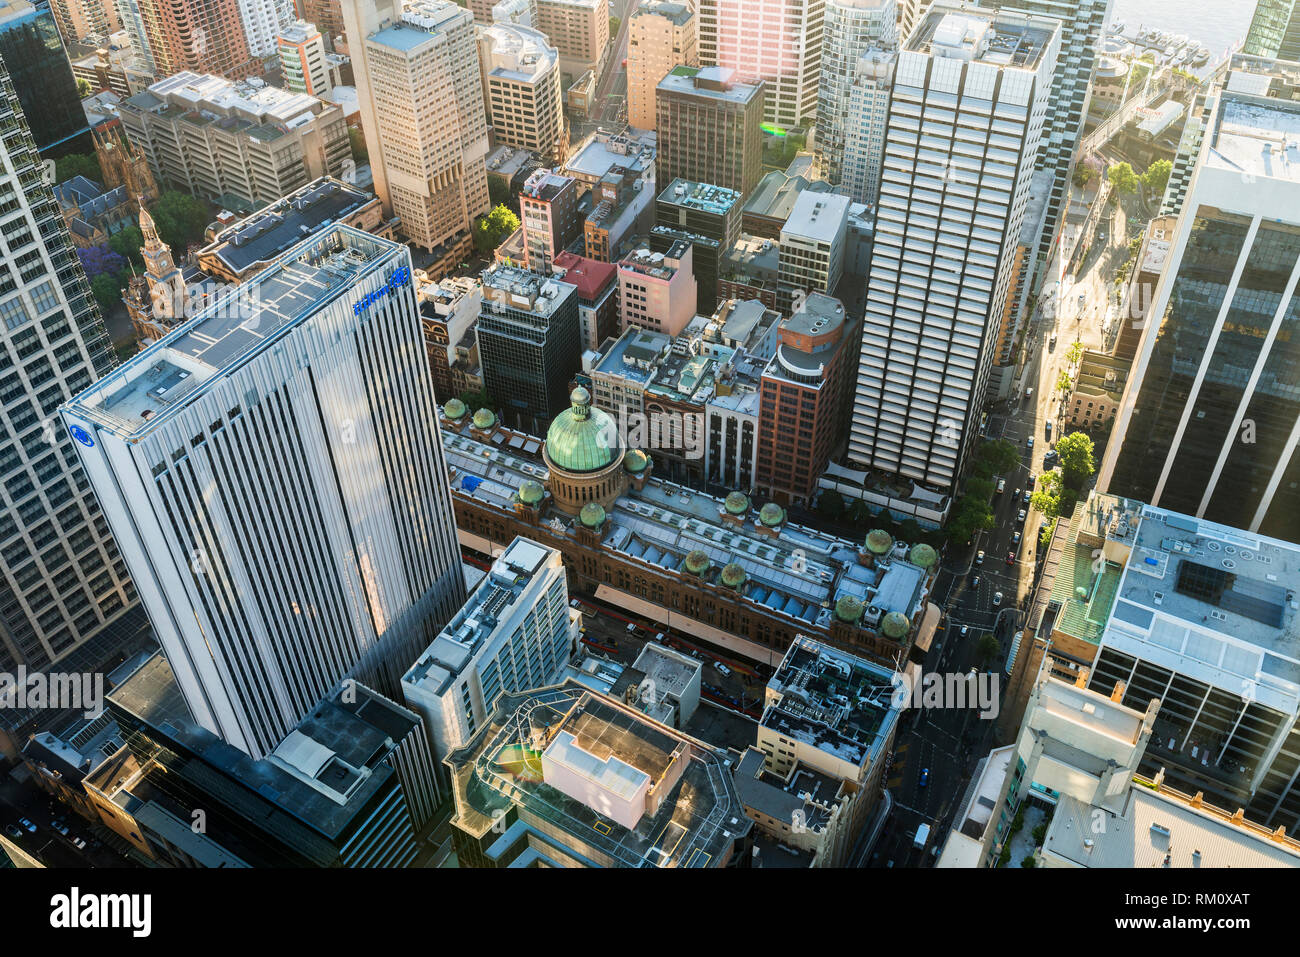 An aerial view of Sydney. Stock Photo